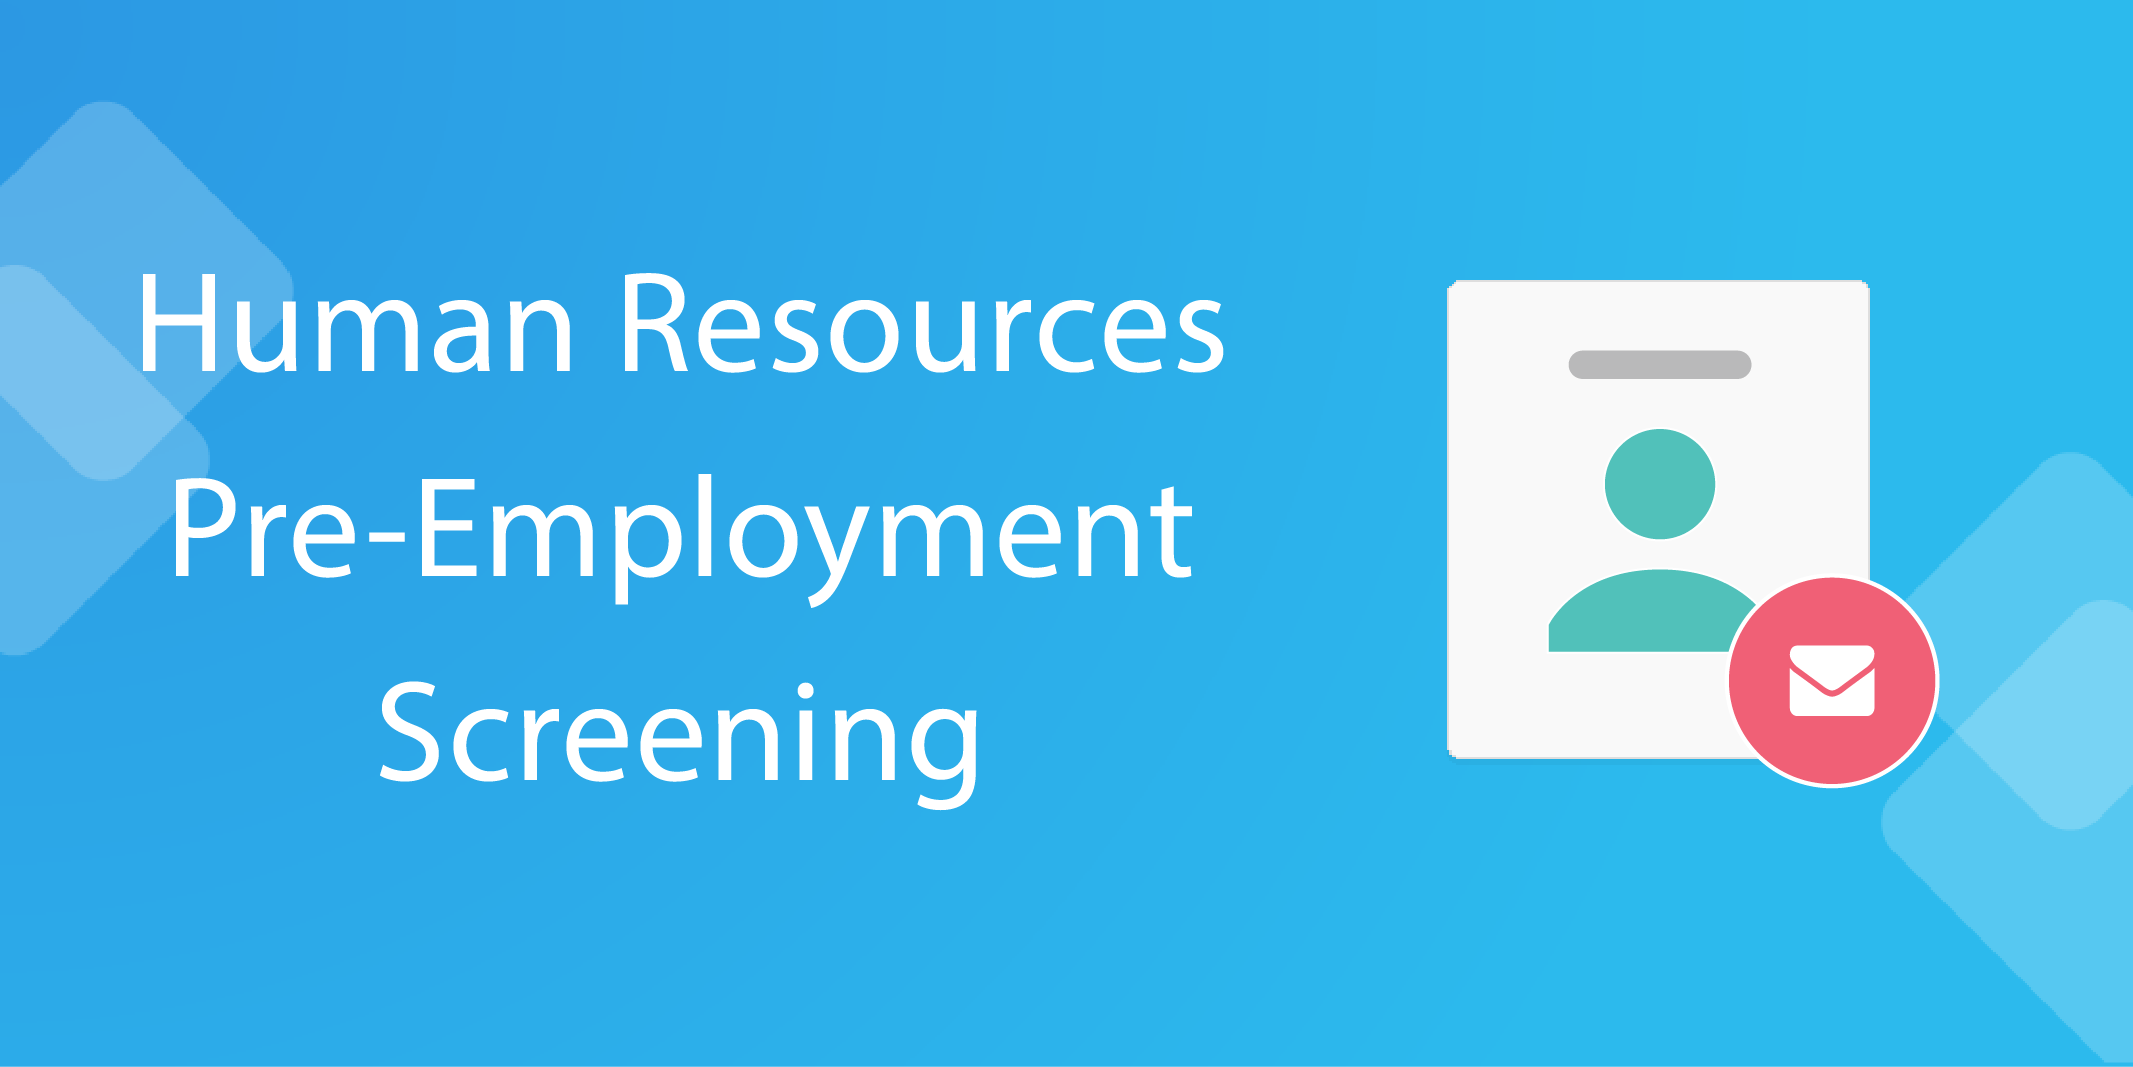 human resources pre-employment screening